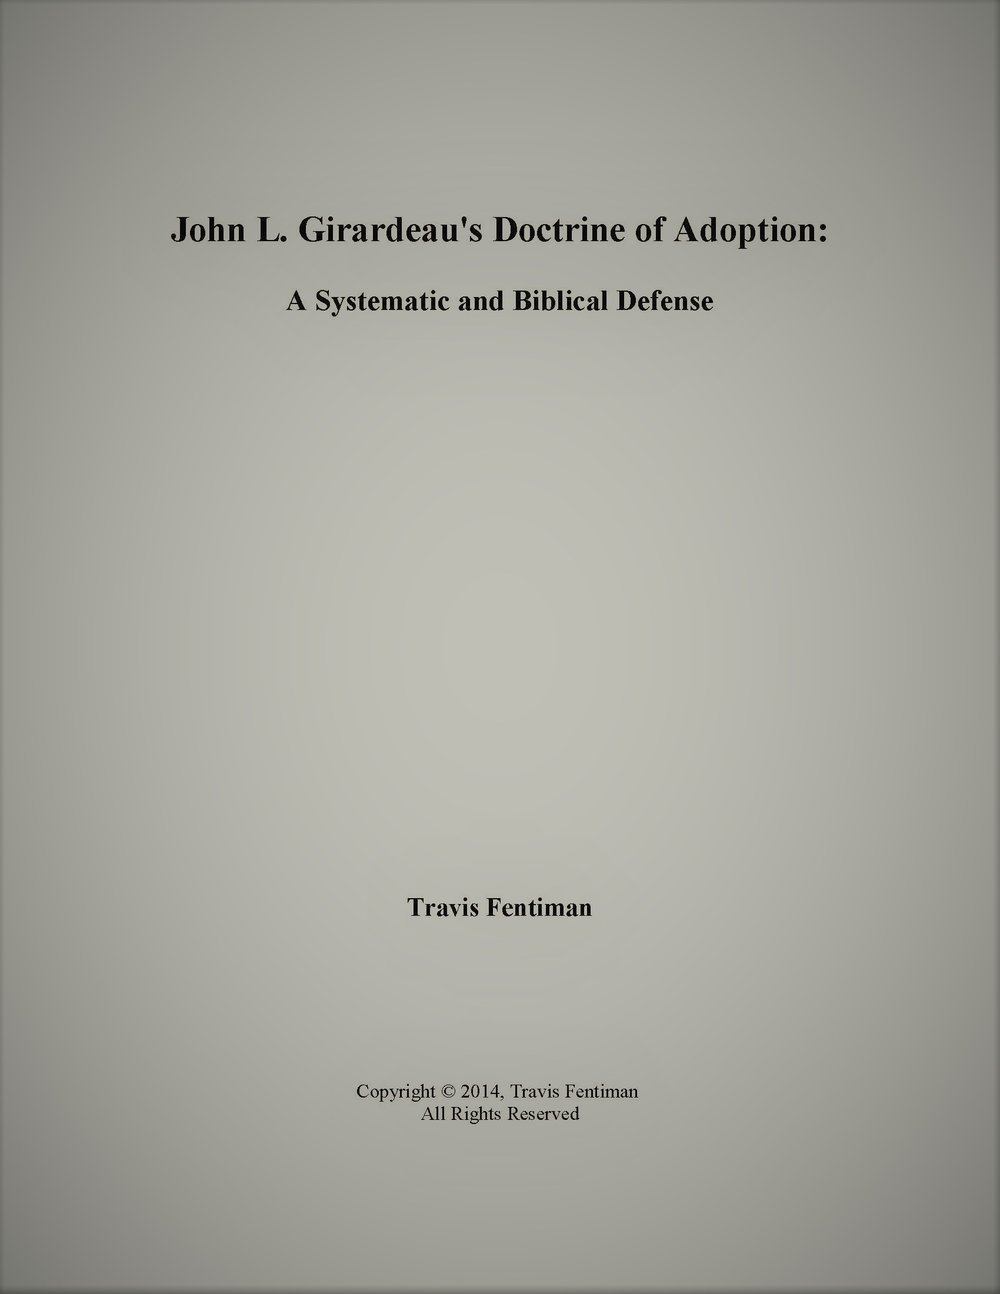 John L. Girardeau's Doctrine of Adoption: A Systematic and Biblical Defense (Travis Fentiman)